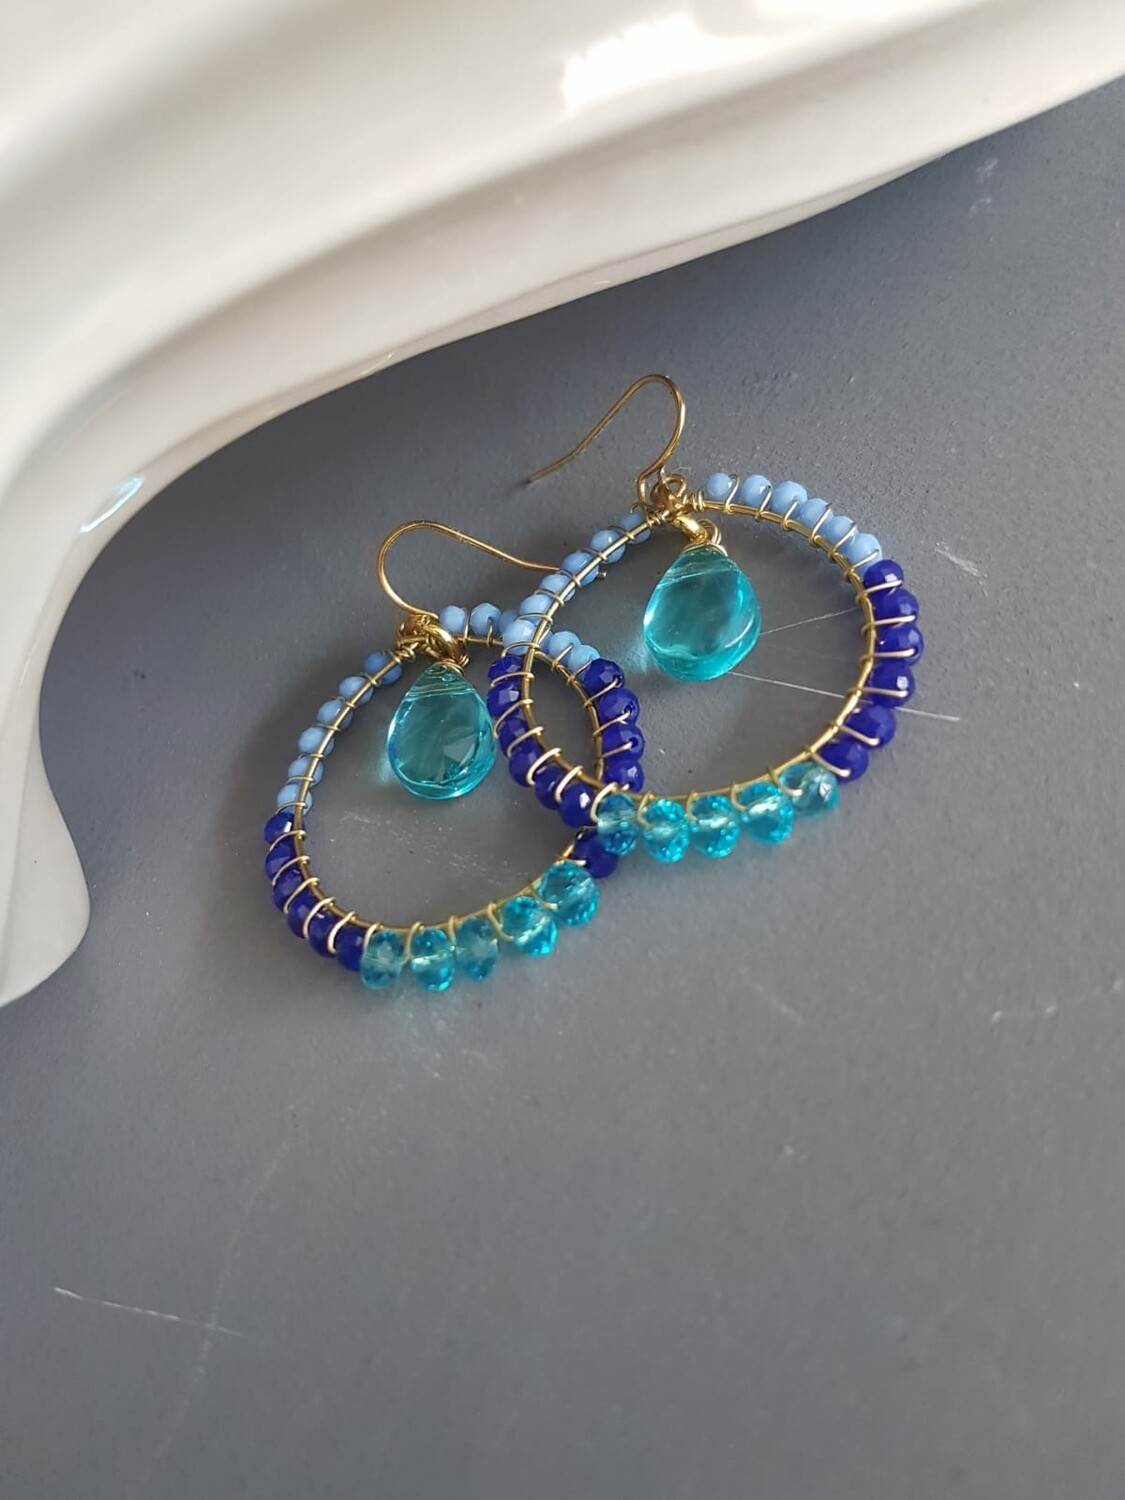 Cazz Creations Turquoise, Amethyst and Clear Earrings